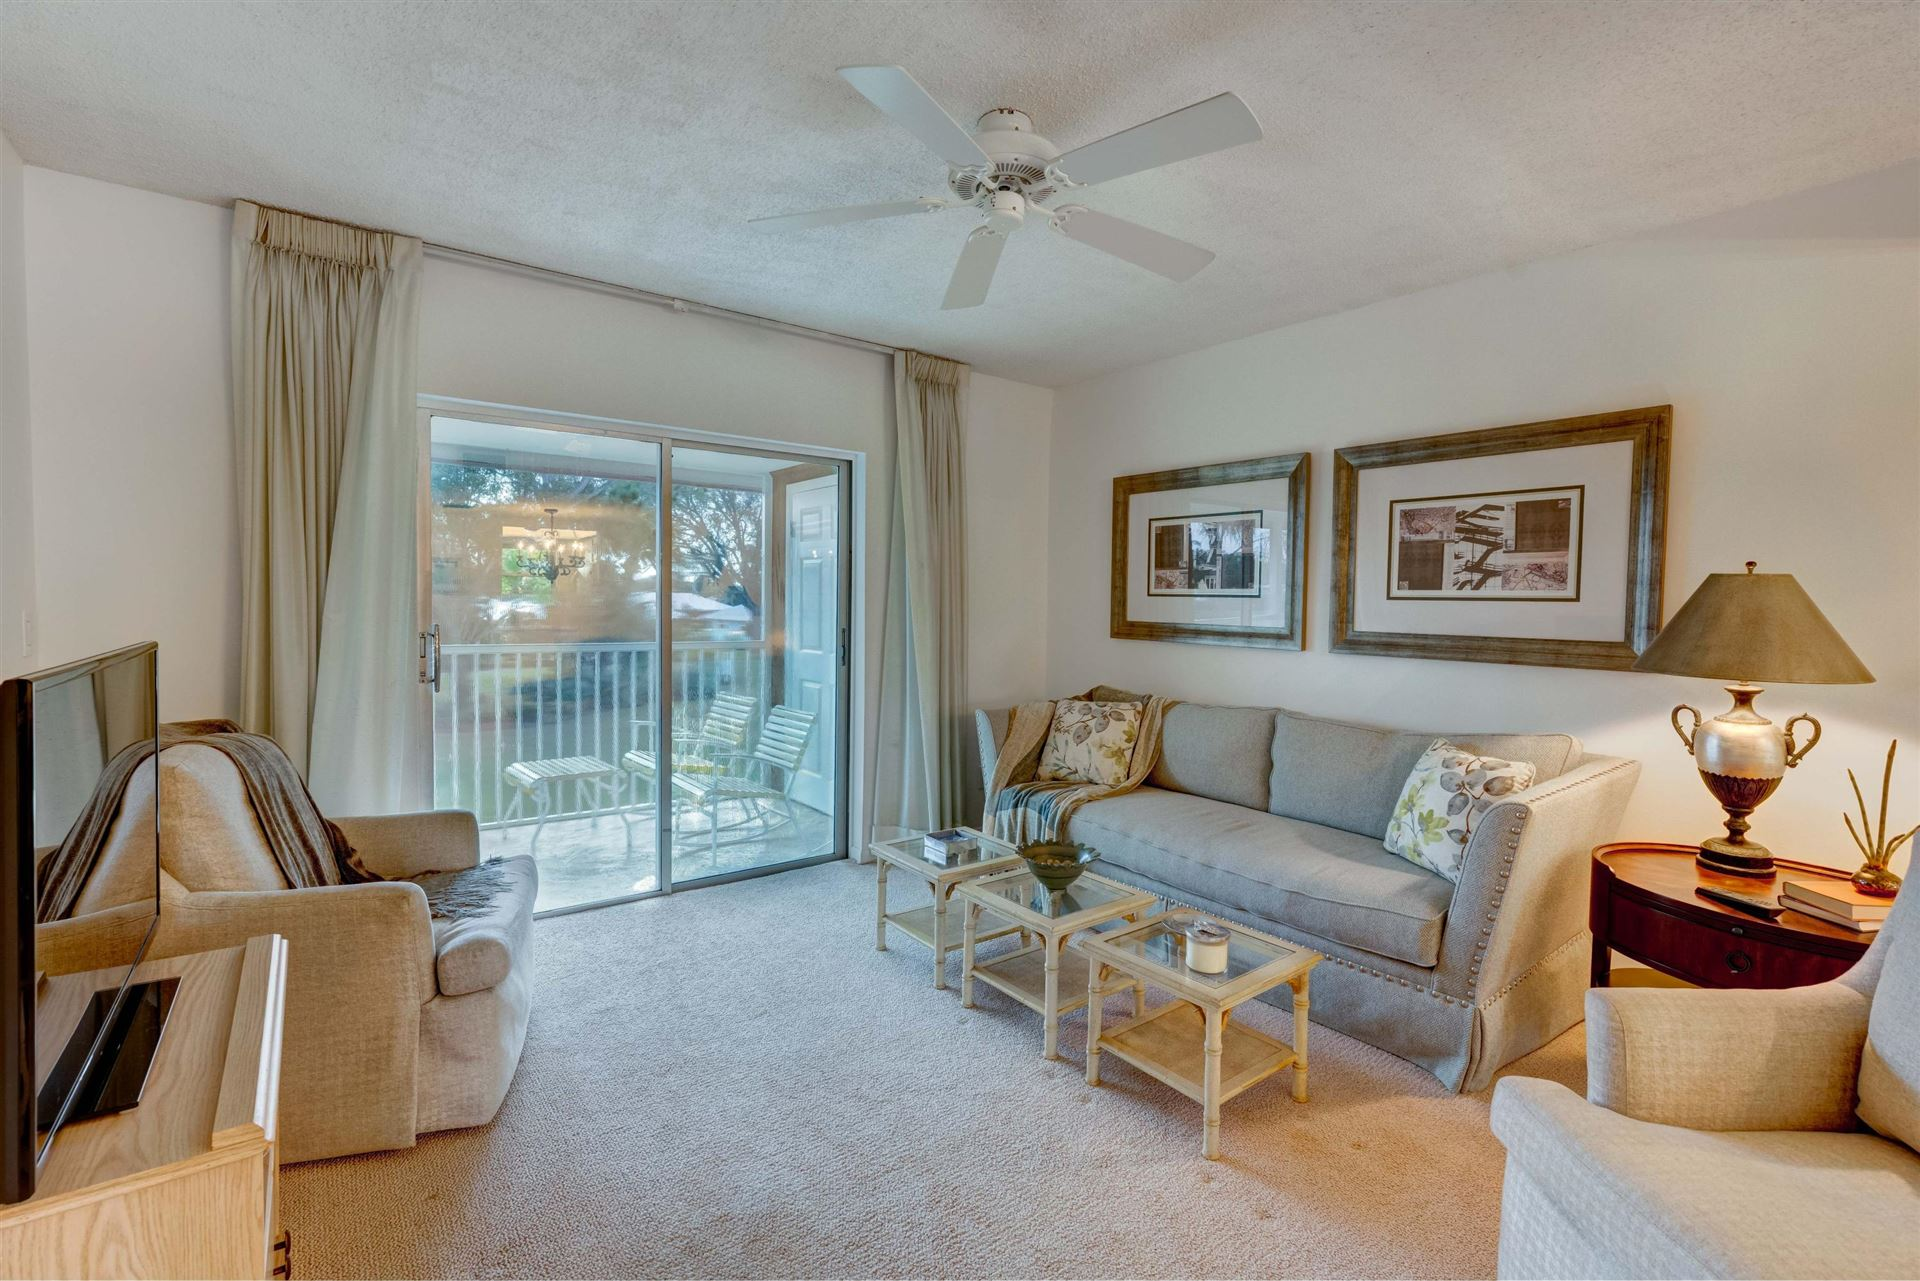 18081 SE Country Club Drive #Bldg 15- Apt 147, Jupiter, FL 33469 - #: RX-10681930